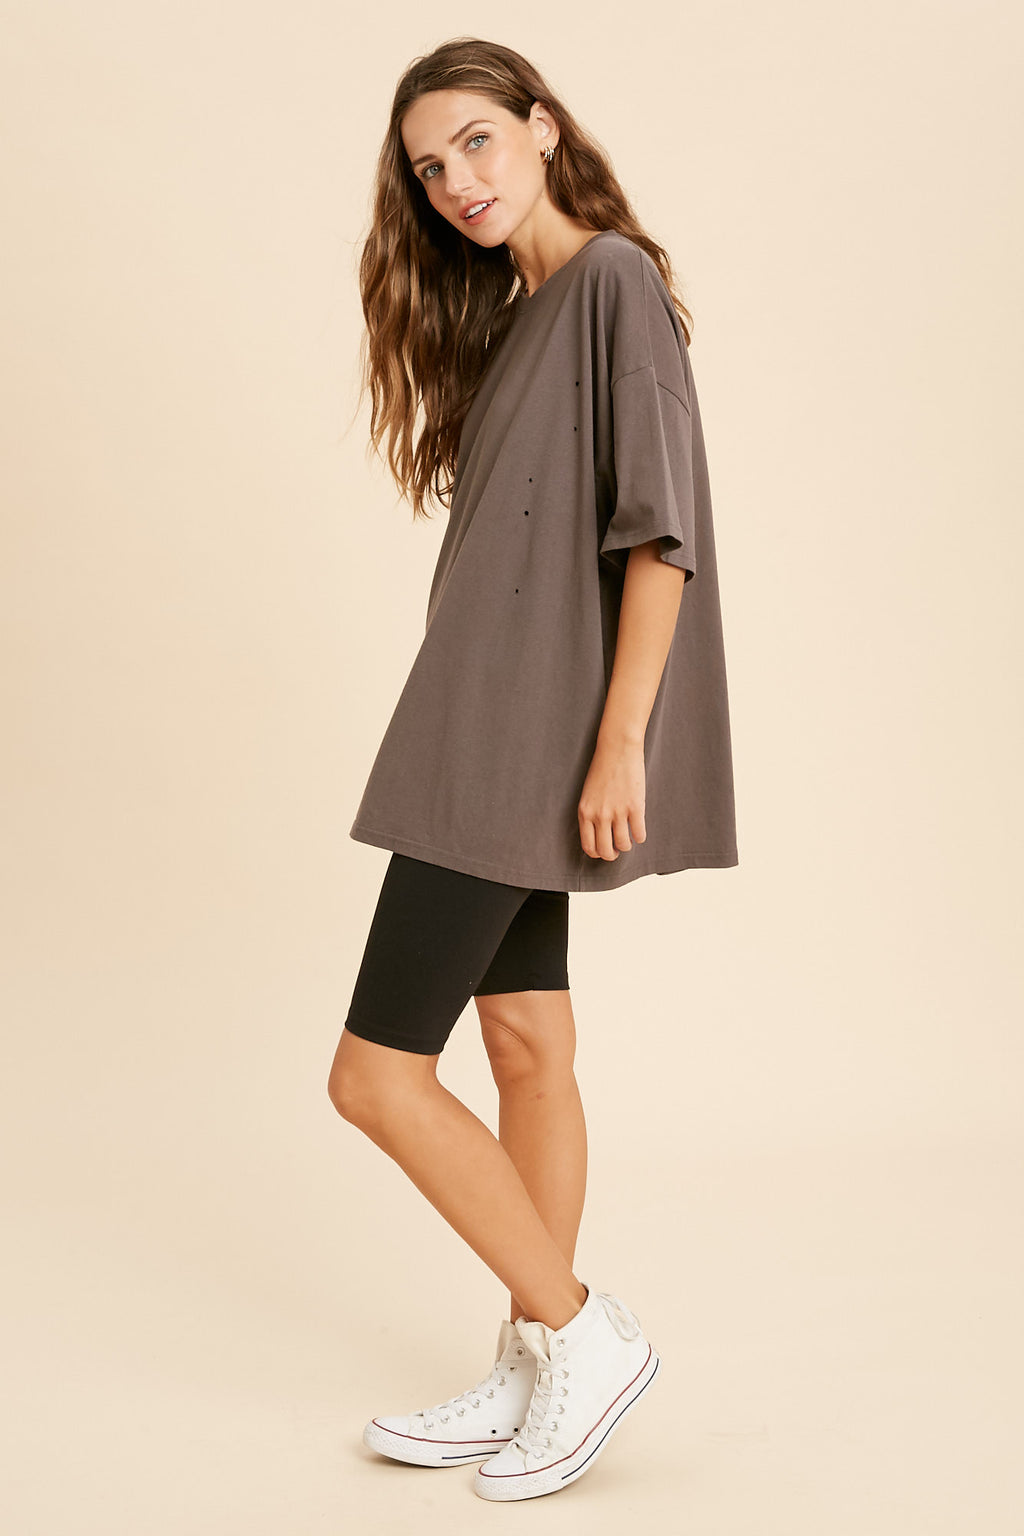 Her Oversized Distressed Tee - Charcoal